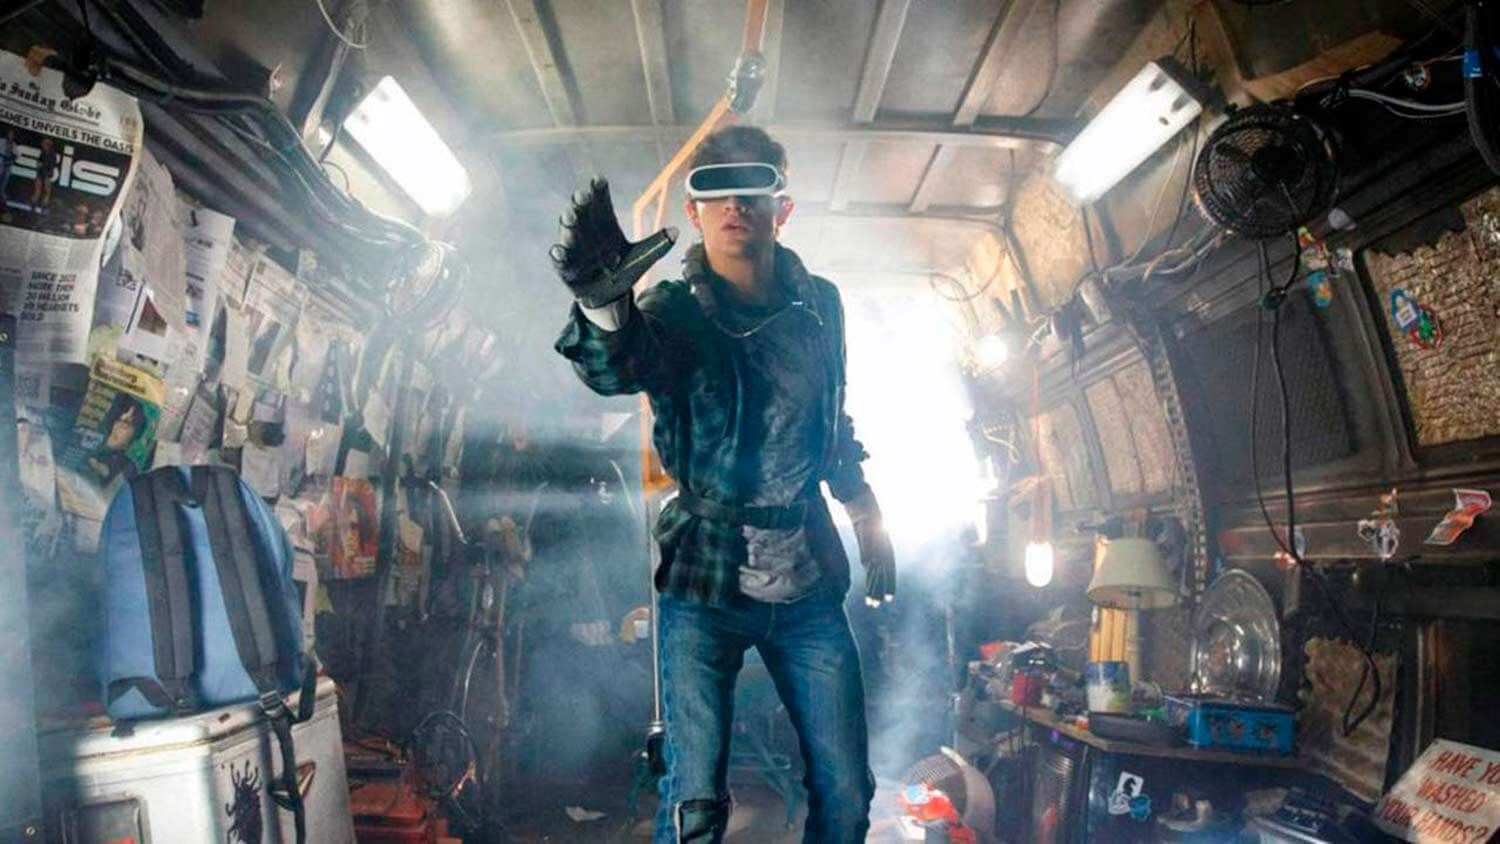 mejores-peliculas-2018-ready-player-one